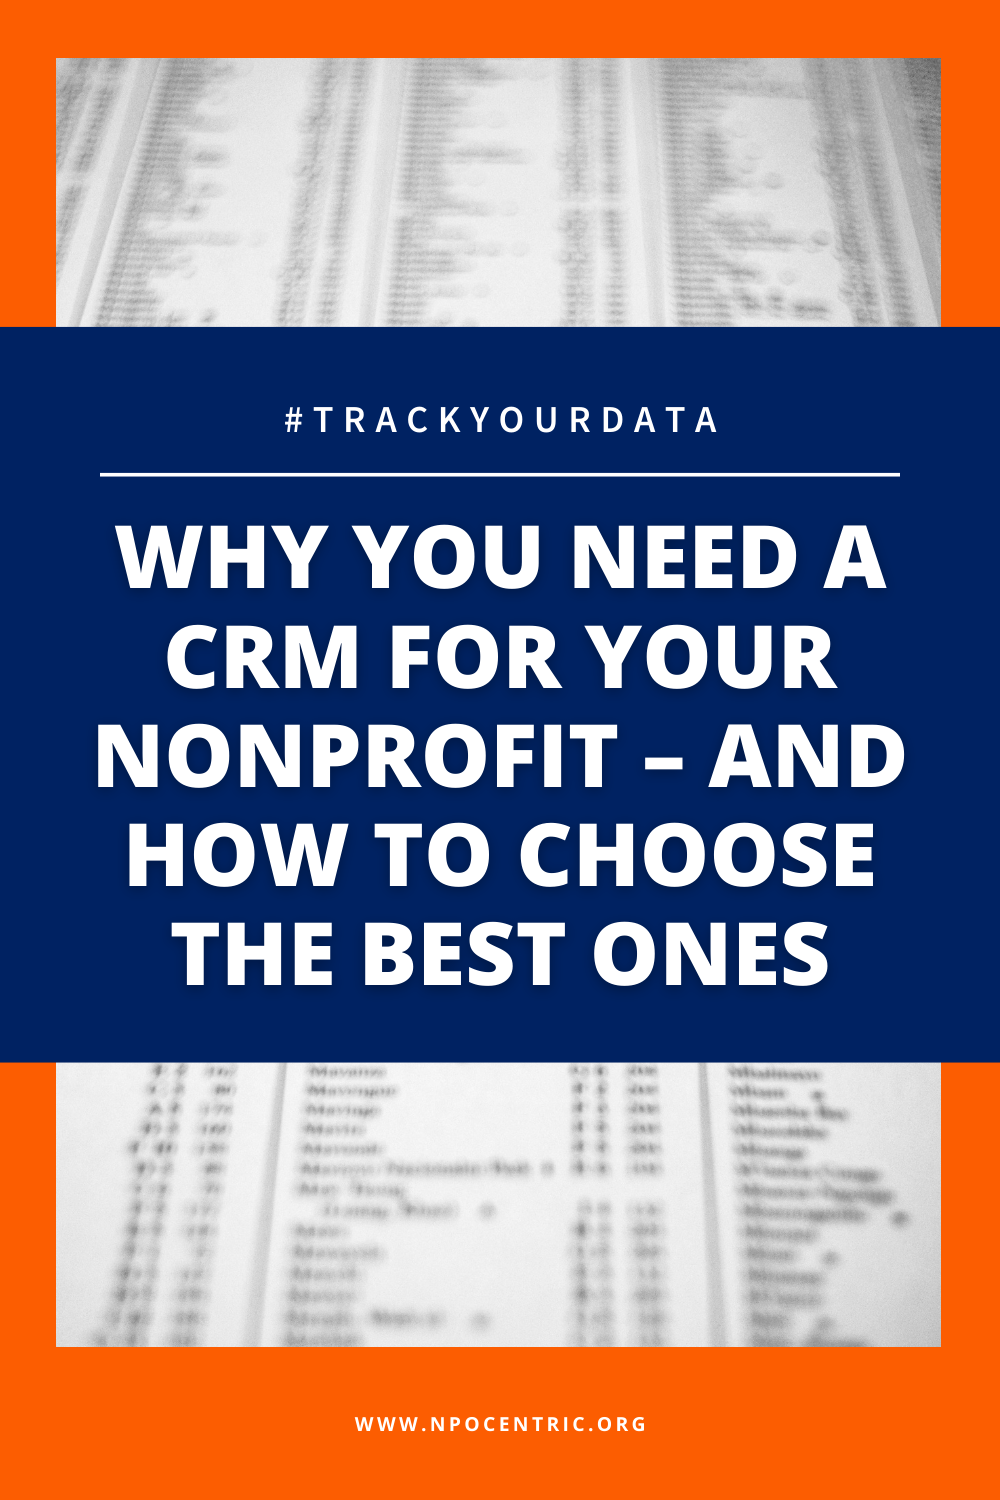 Why You Need a CRM for Your Nonprofit – and How to Choose the Best Ones